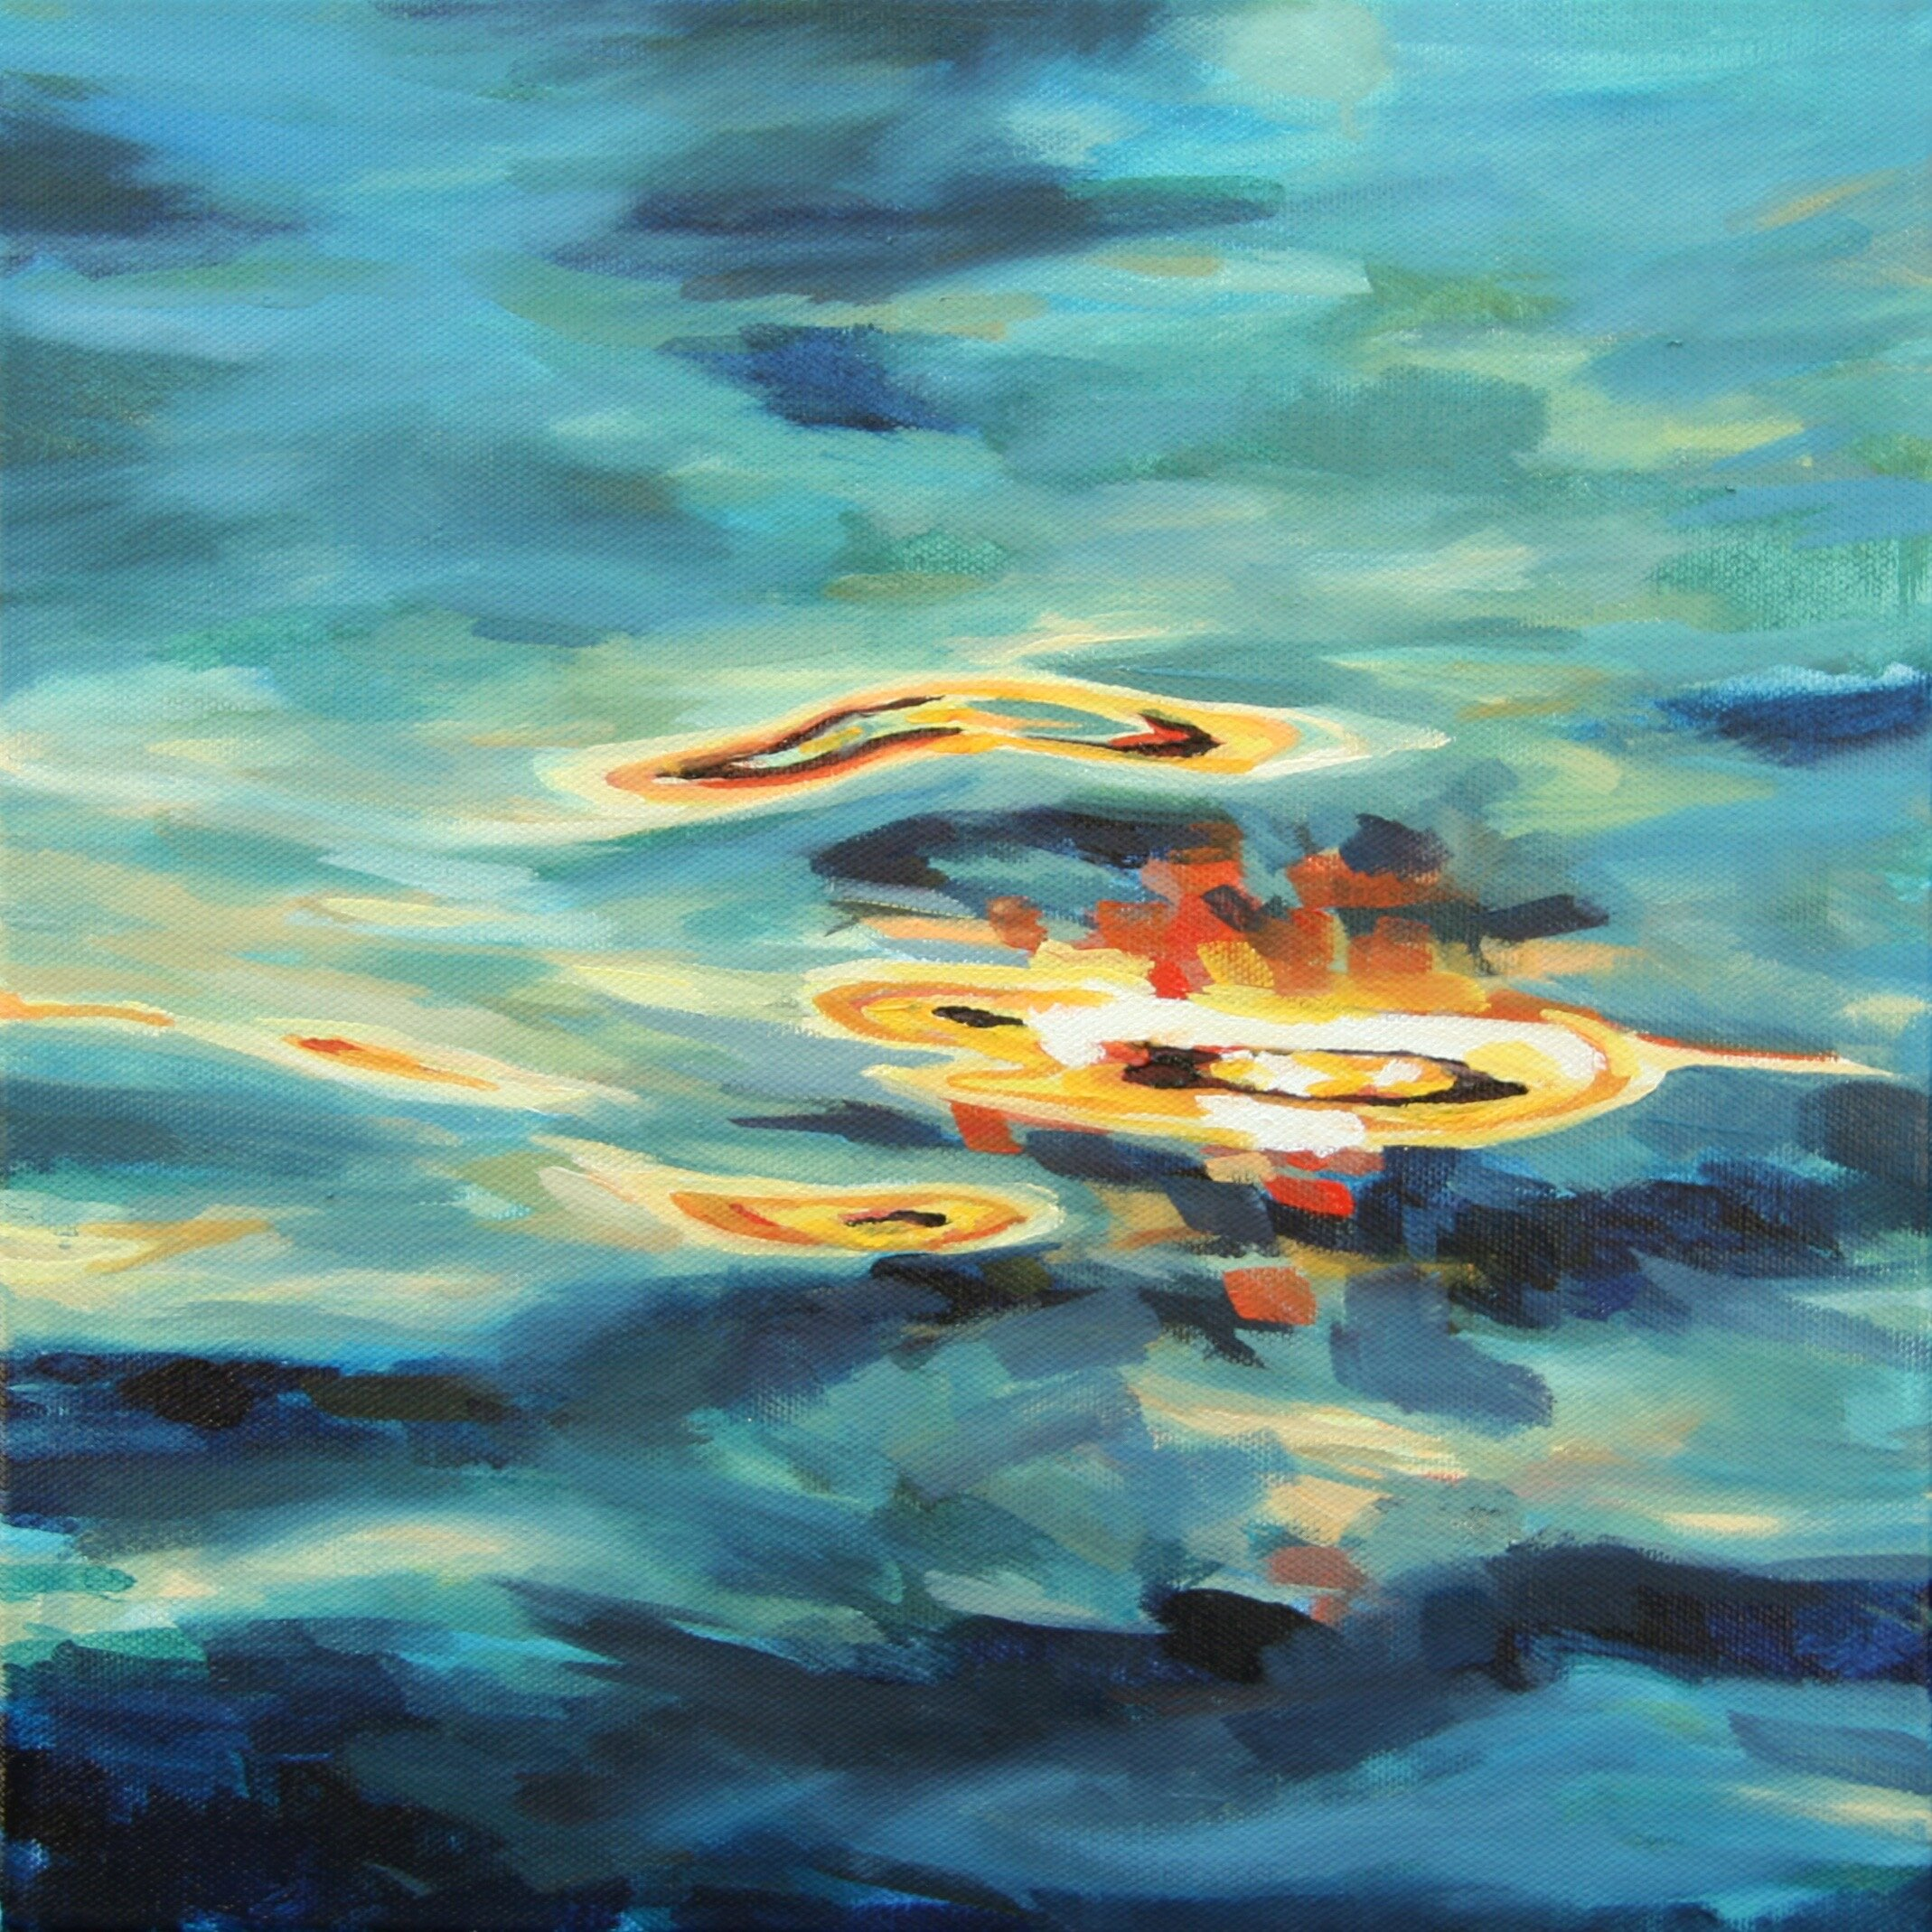 """'Radiate'  2015  12"""" x 12""""  water soluble oil on canvas  sold"""